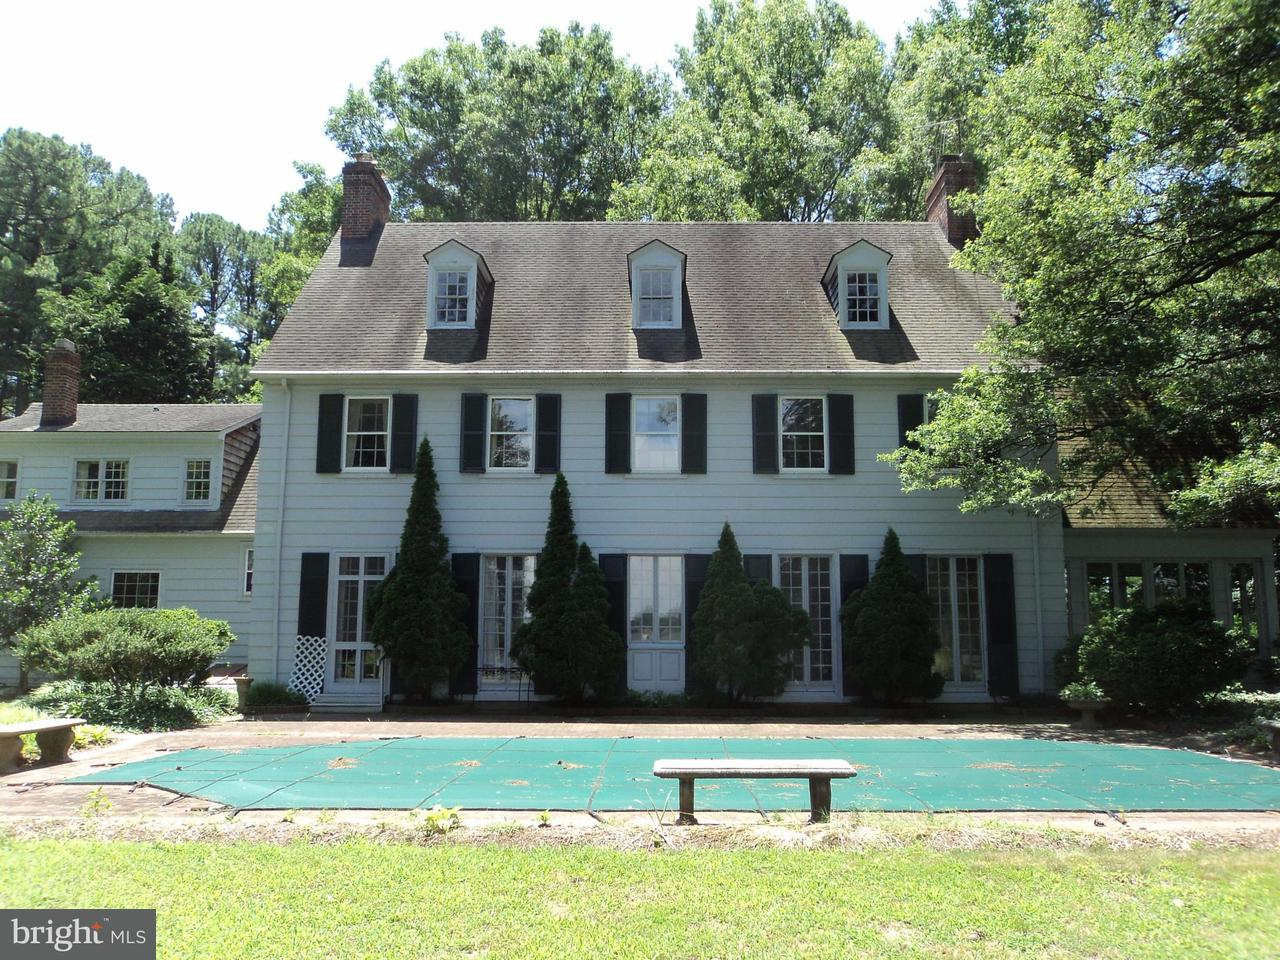 Single Family Home for Sale at DONCASTER Road DONCASTER Road Easton, Maryland 21601 United States